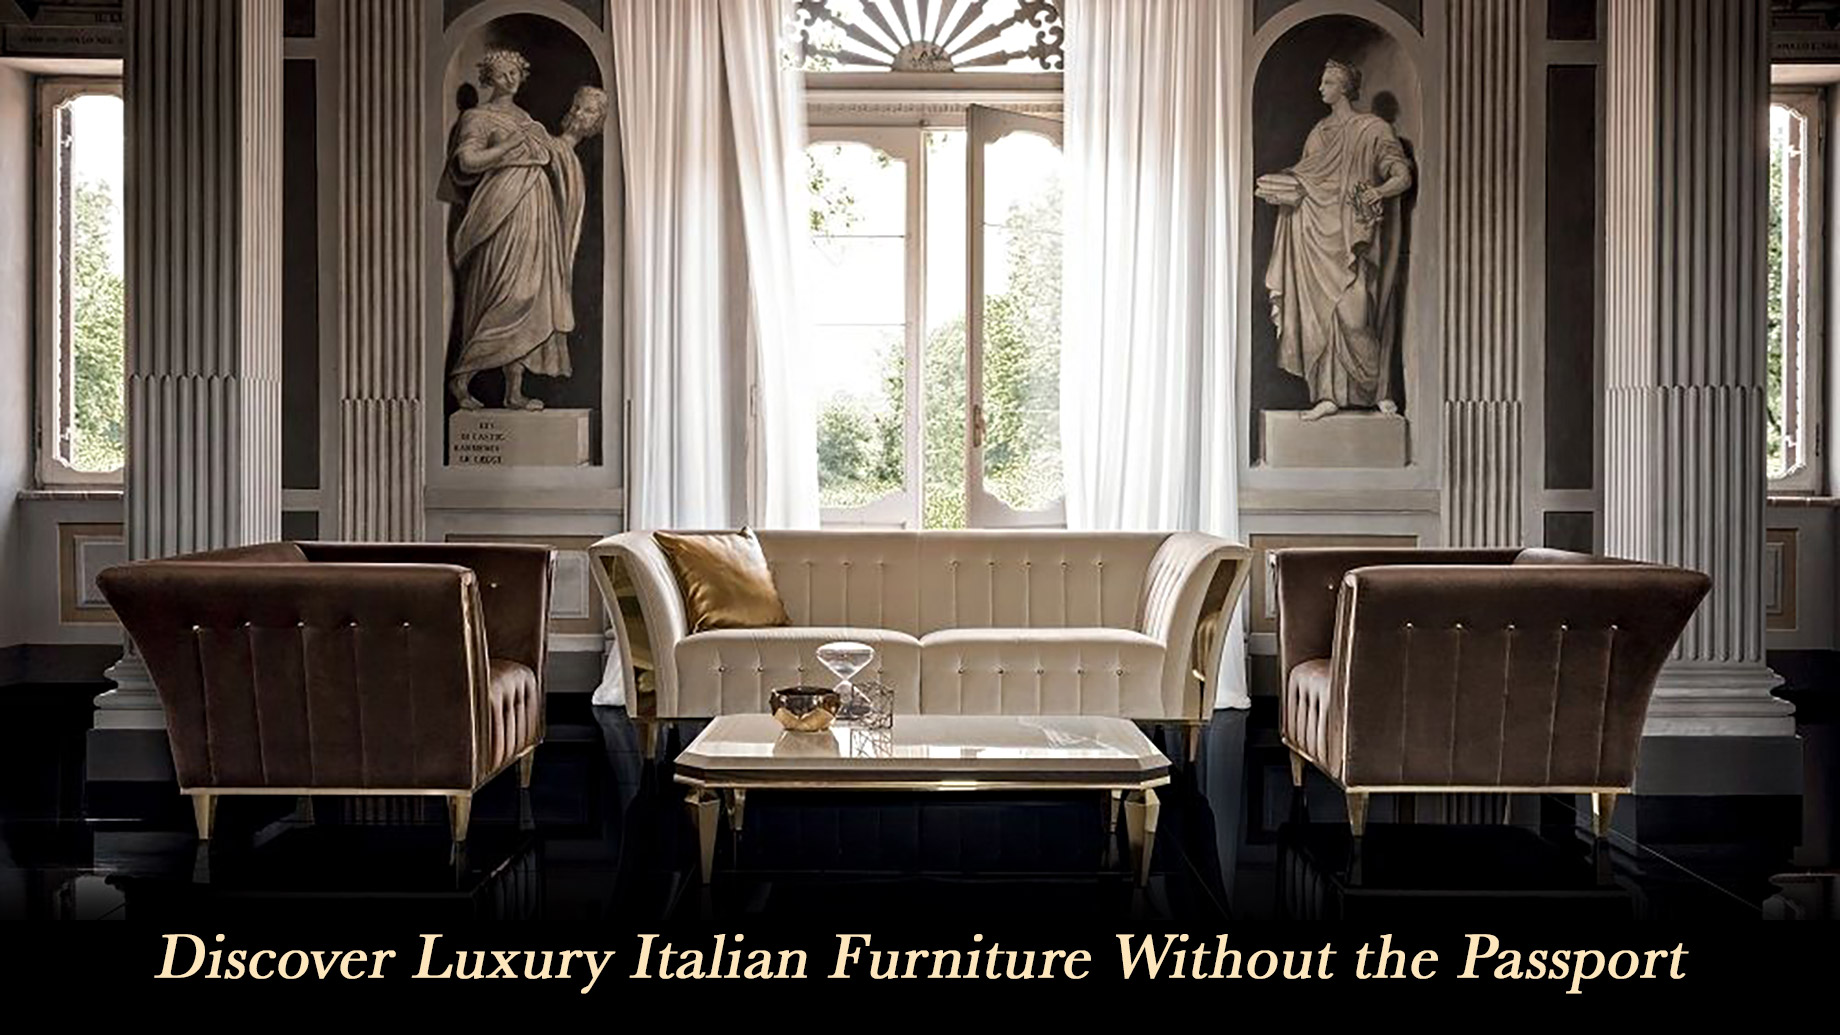 Discover Luxury Italian Furniture Without the Passport